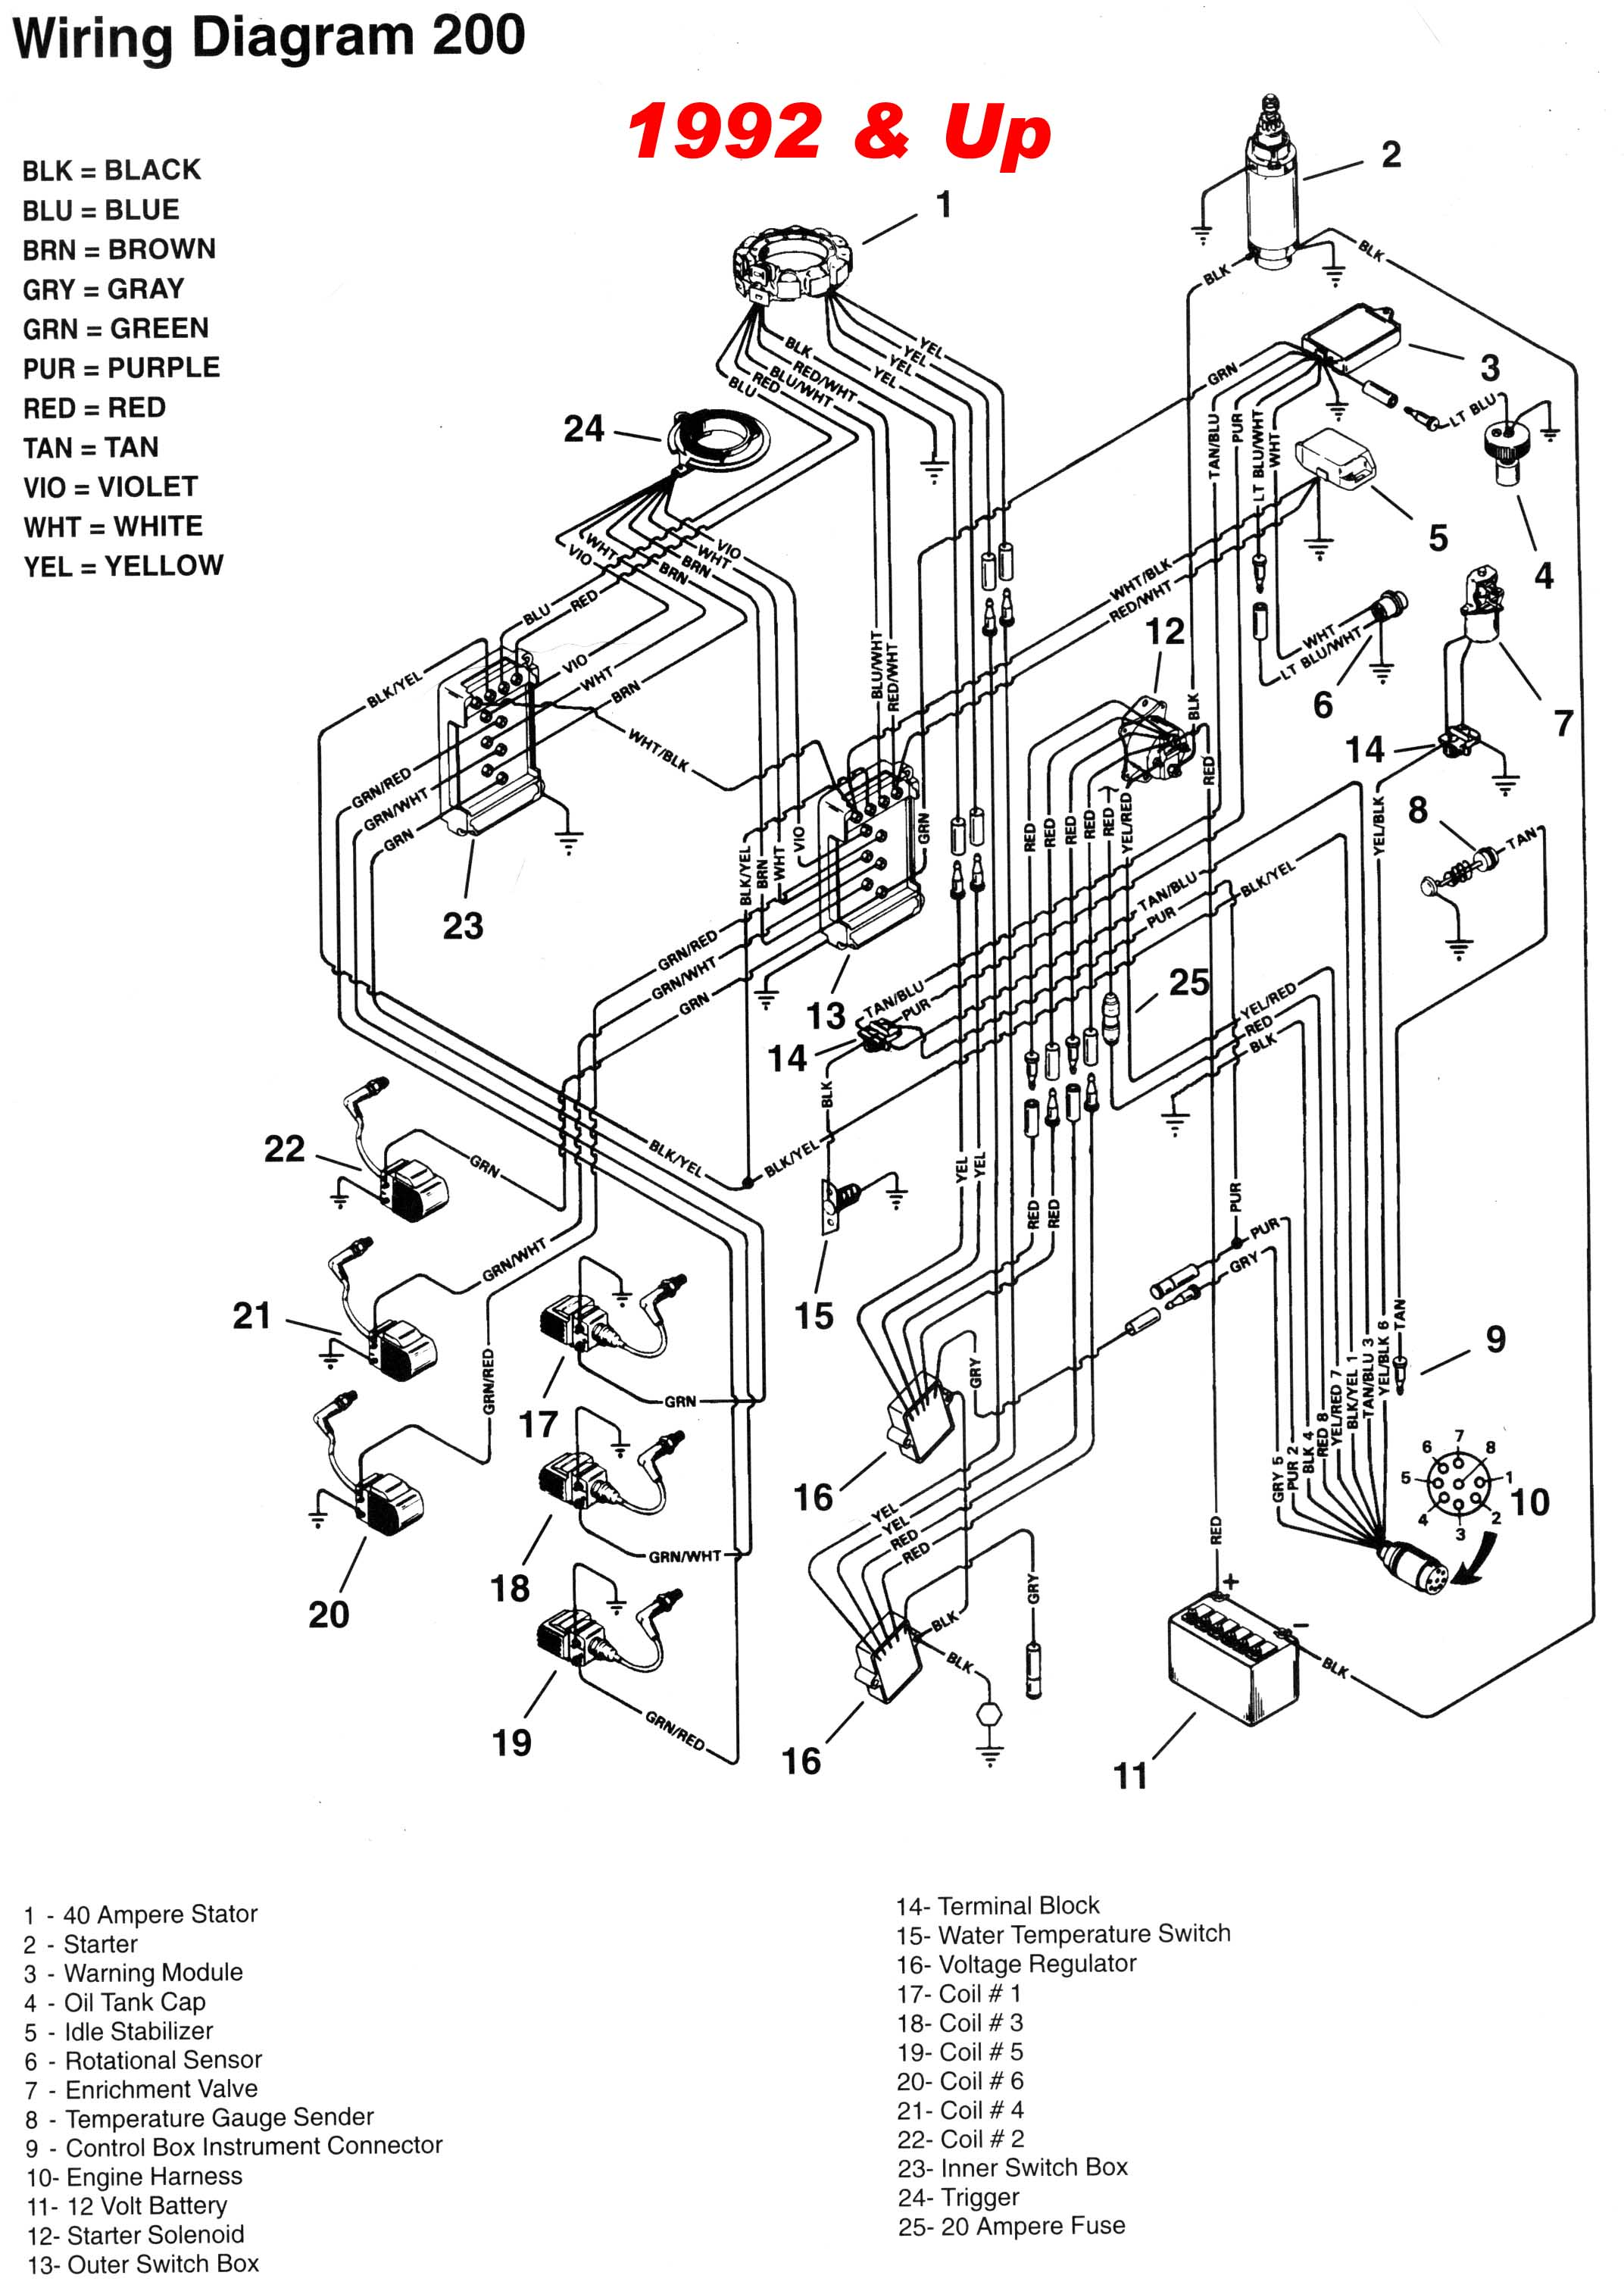 Mercruiser 7 4 Wiring Harness - Wiring Diagram Rows on nissan oil filter, nissan lights, nissan fuel pump, nissan fuse, nissan body harness, nissan radio harness, nissan starter, nissan engine, nissan water pump, nissan speedometer, nissan exhaust, nissan throttle body, nissan ecu, nissan brakes, nissan headlights, nissan timing belt, nissan timing chain, nissan alternator, nissan radiator, nissan transformer,